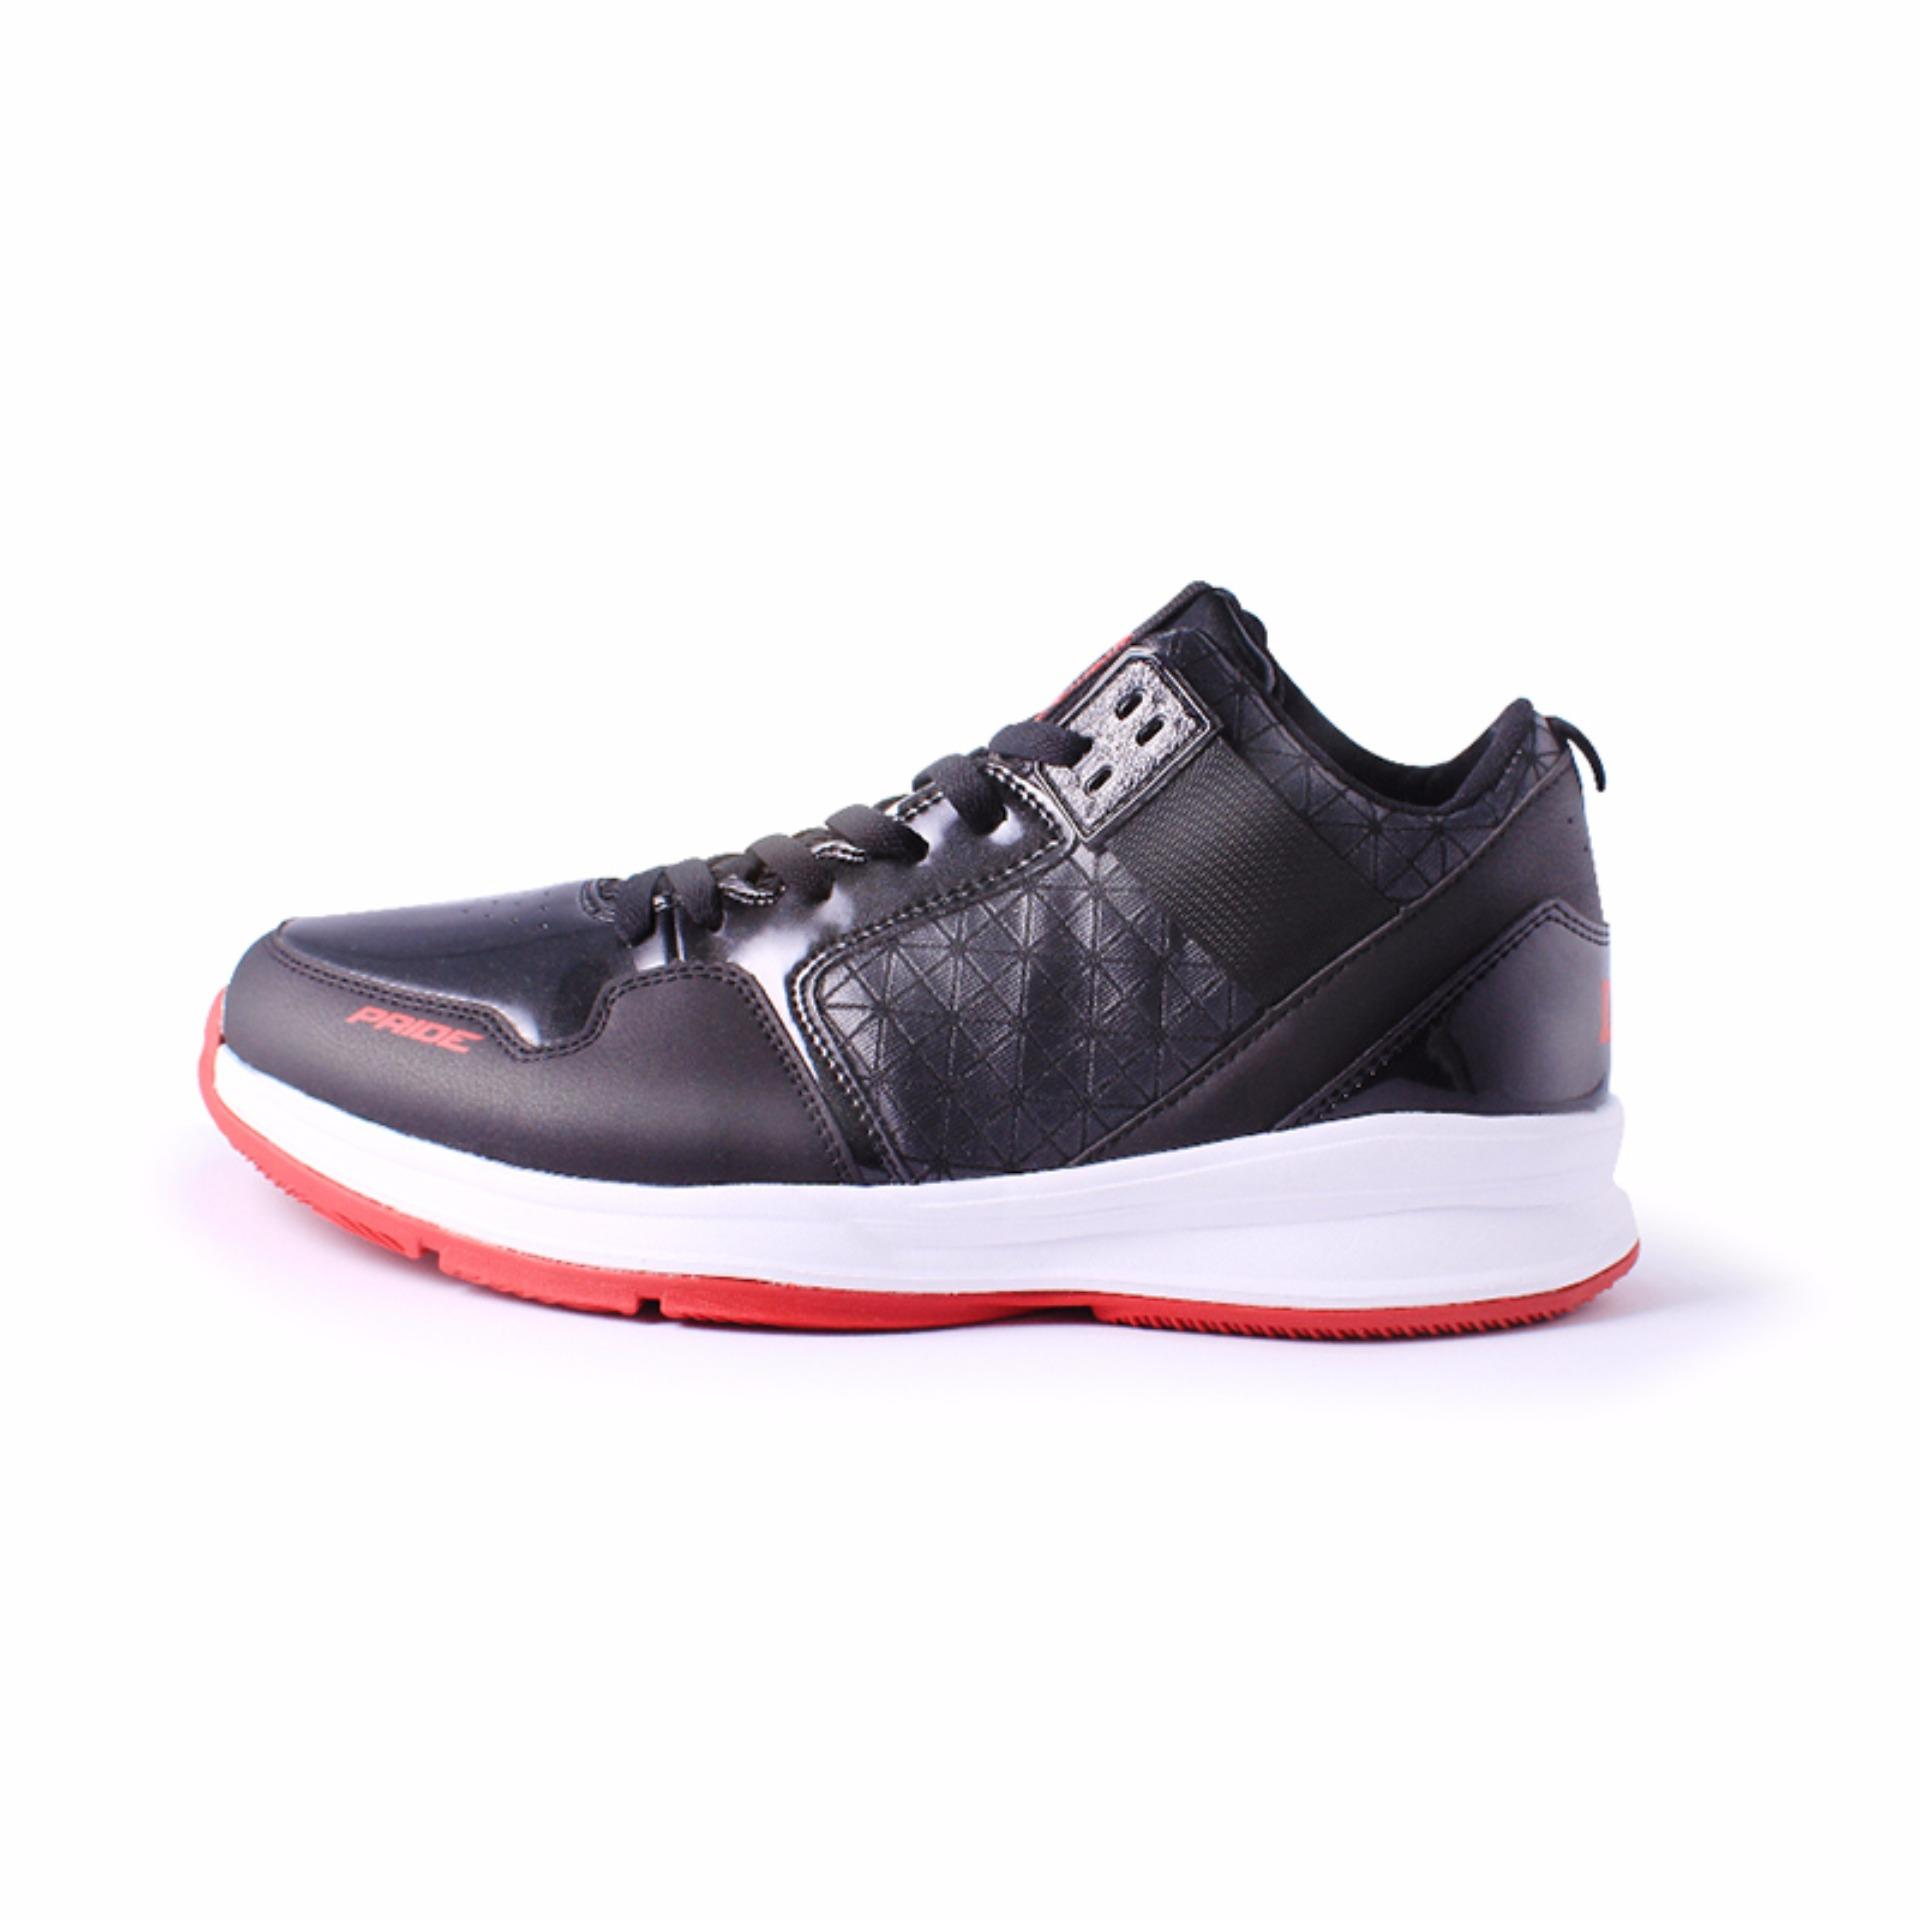 Beli Ardiles Men Pride Basket Shoes Black Red Ardiles Online